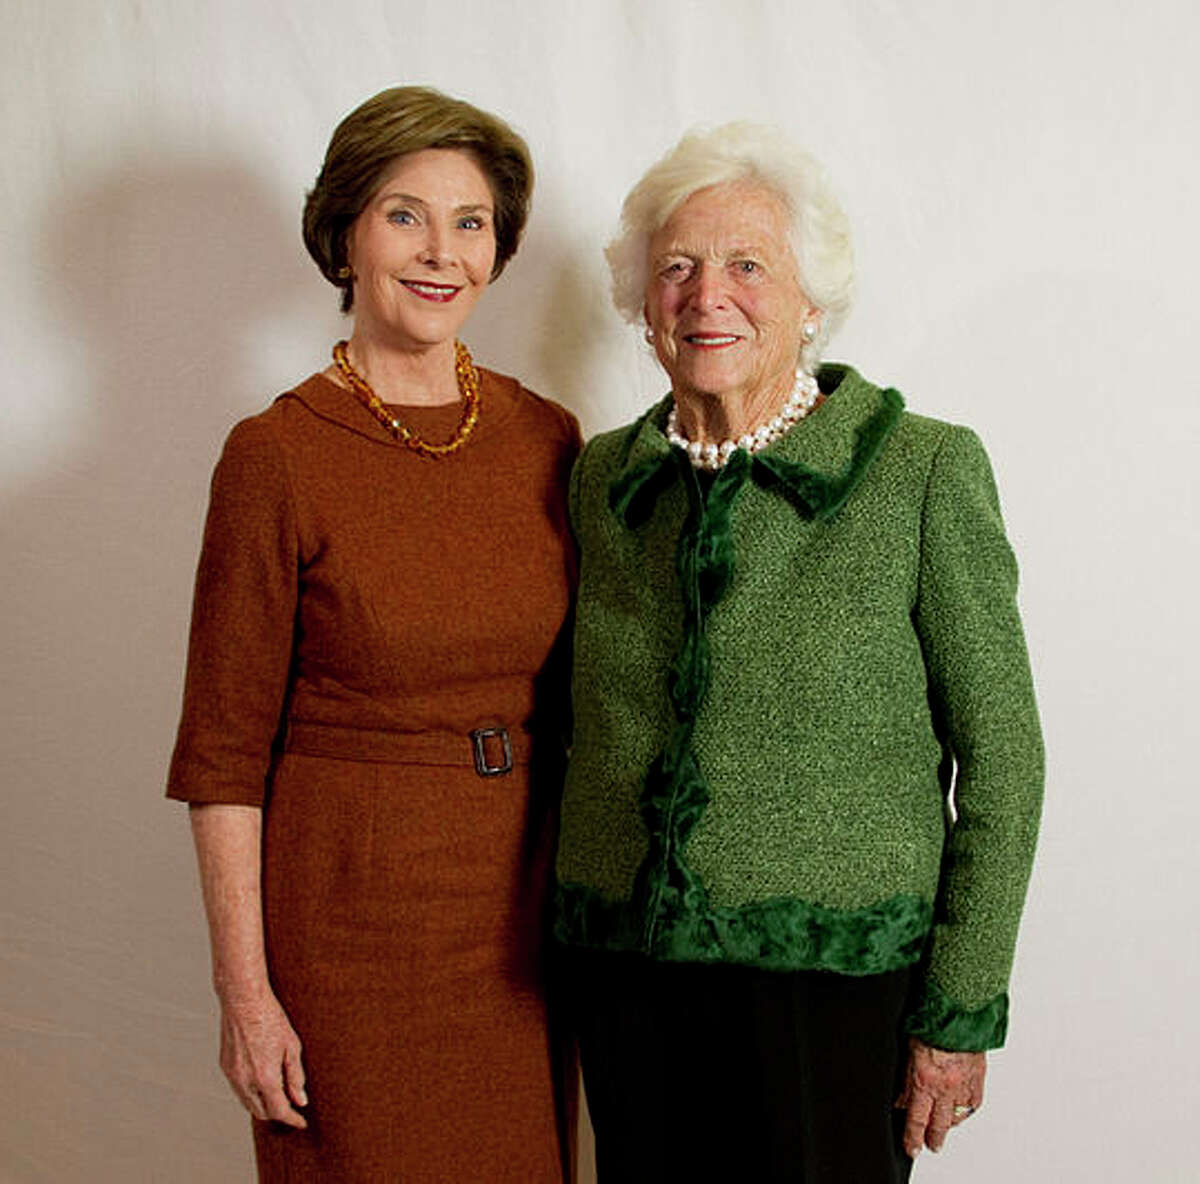 Former First Ladies Barbara and Laura Bush pledged a combined $2 million to help public schools and libraries after Hurricanes Harvey and Irma.